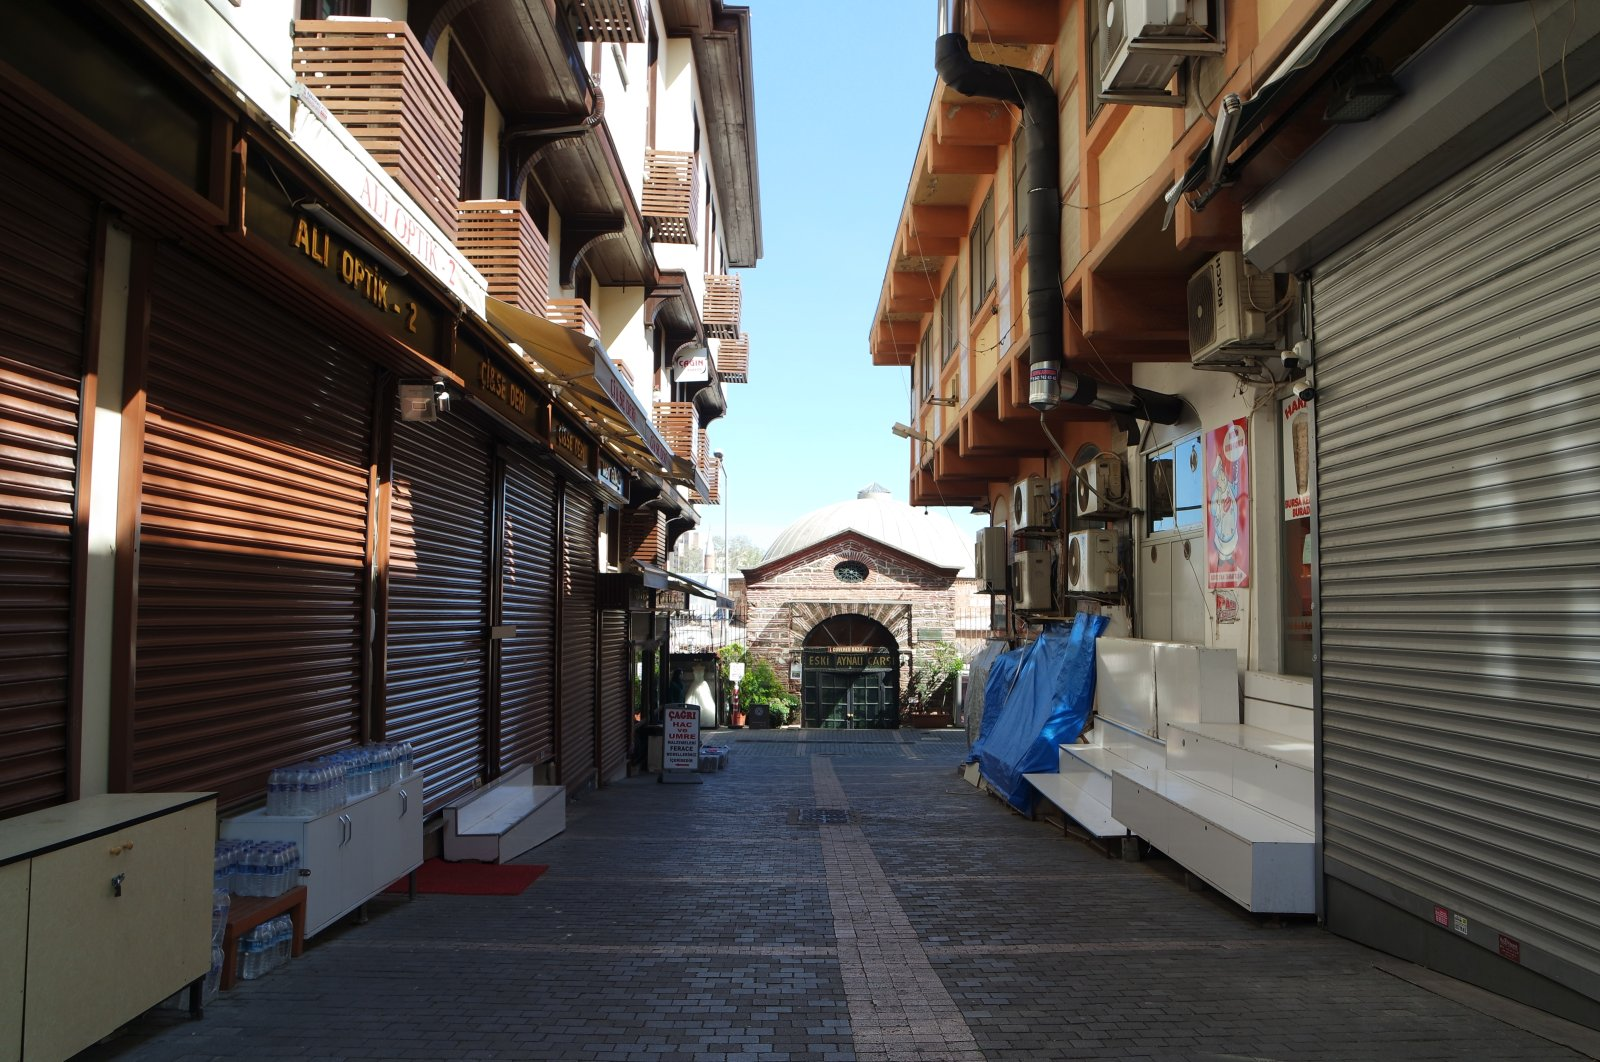 Temporarily closed stores due to coronavirus pandemic seen in northwestern Bursa province, Turkey, April 17, 2020. (AA Photo)